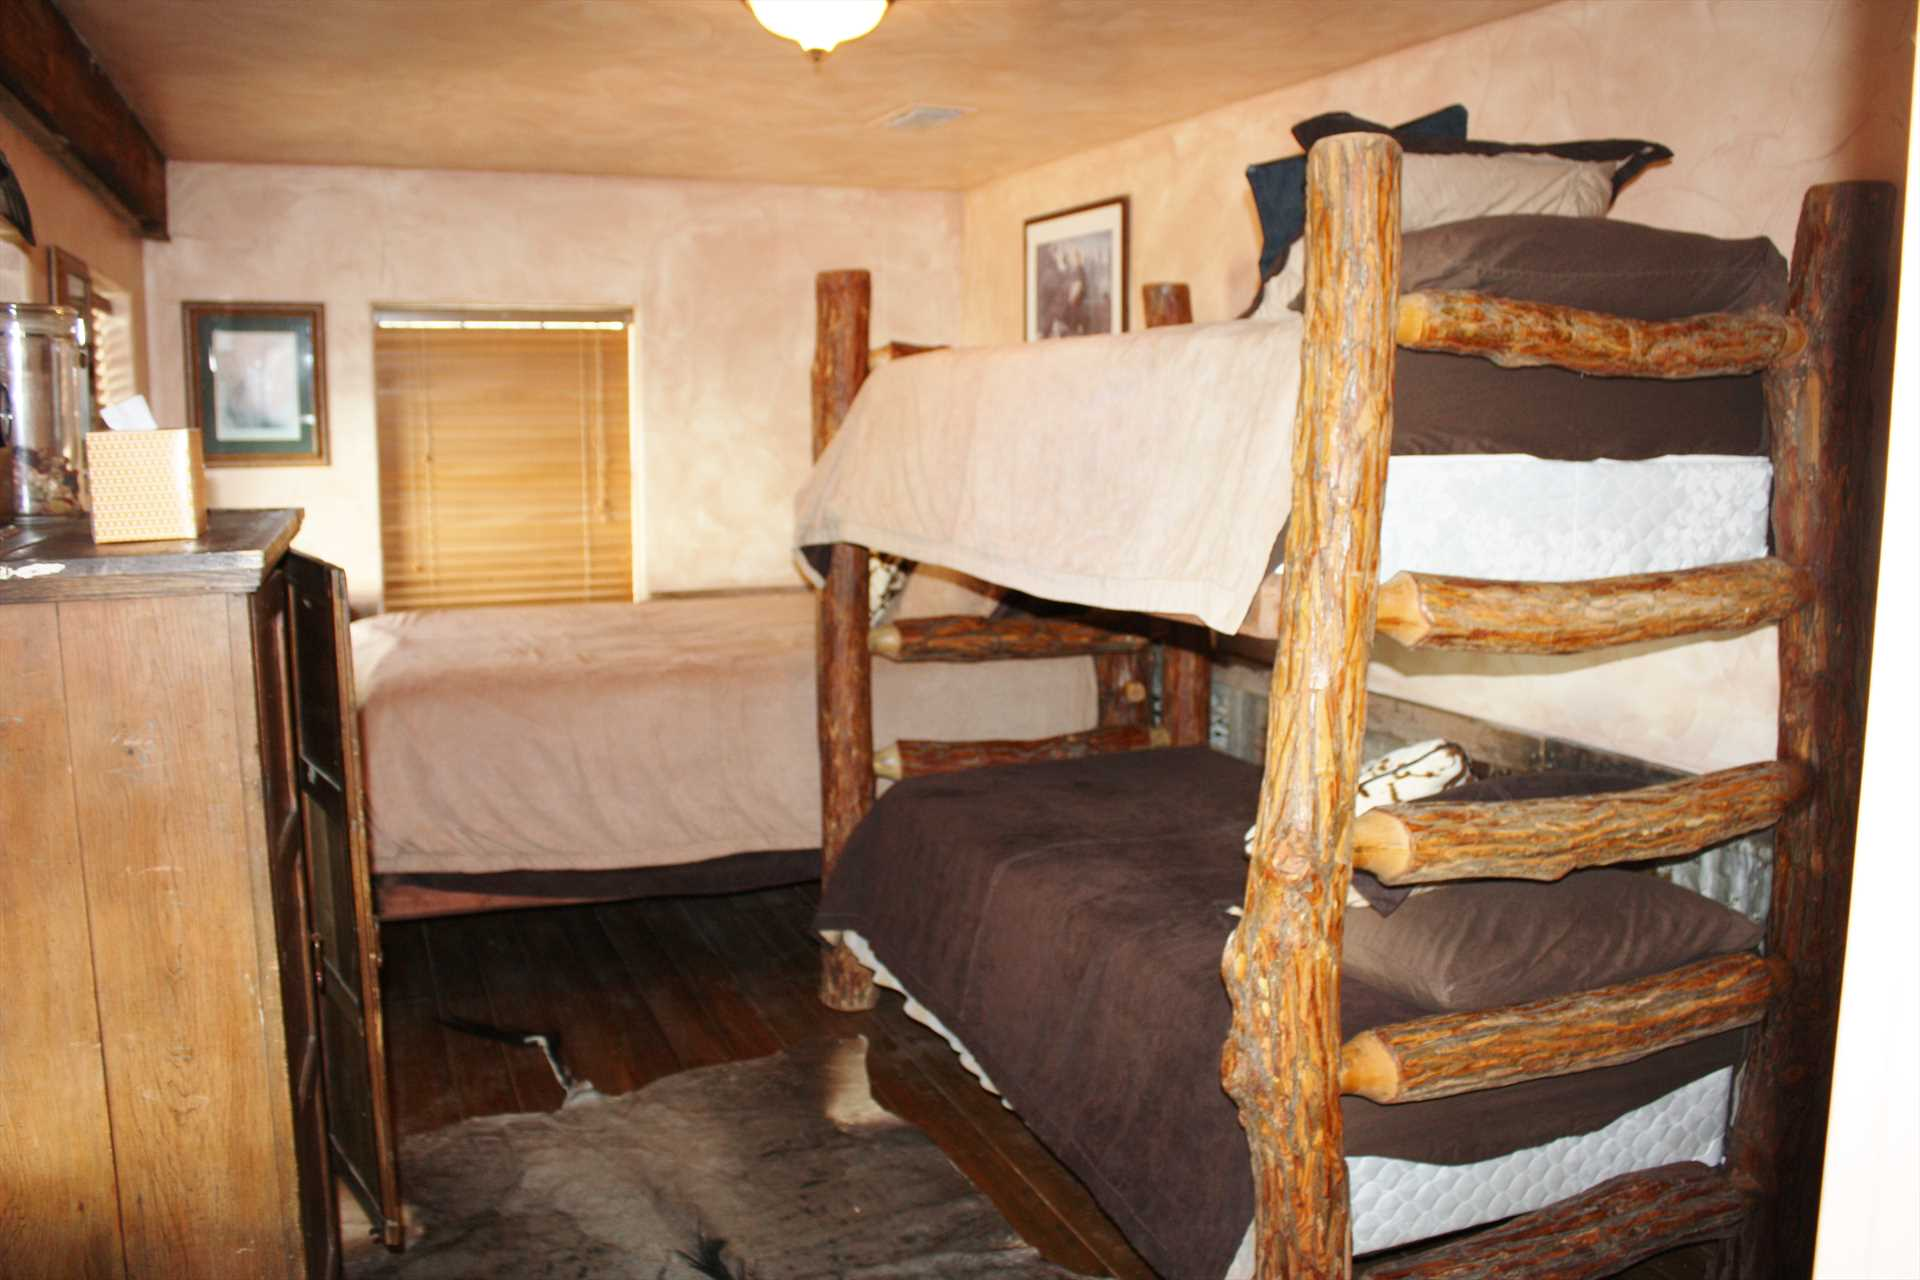 You'll just have to stay more than one night, so you can avoid the battle for the top bunk!